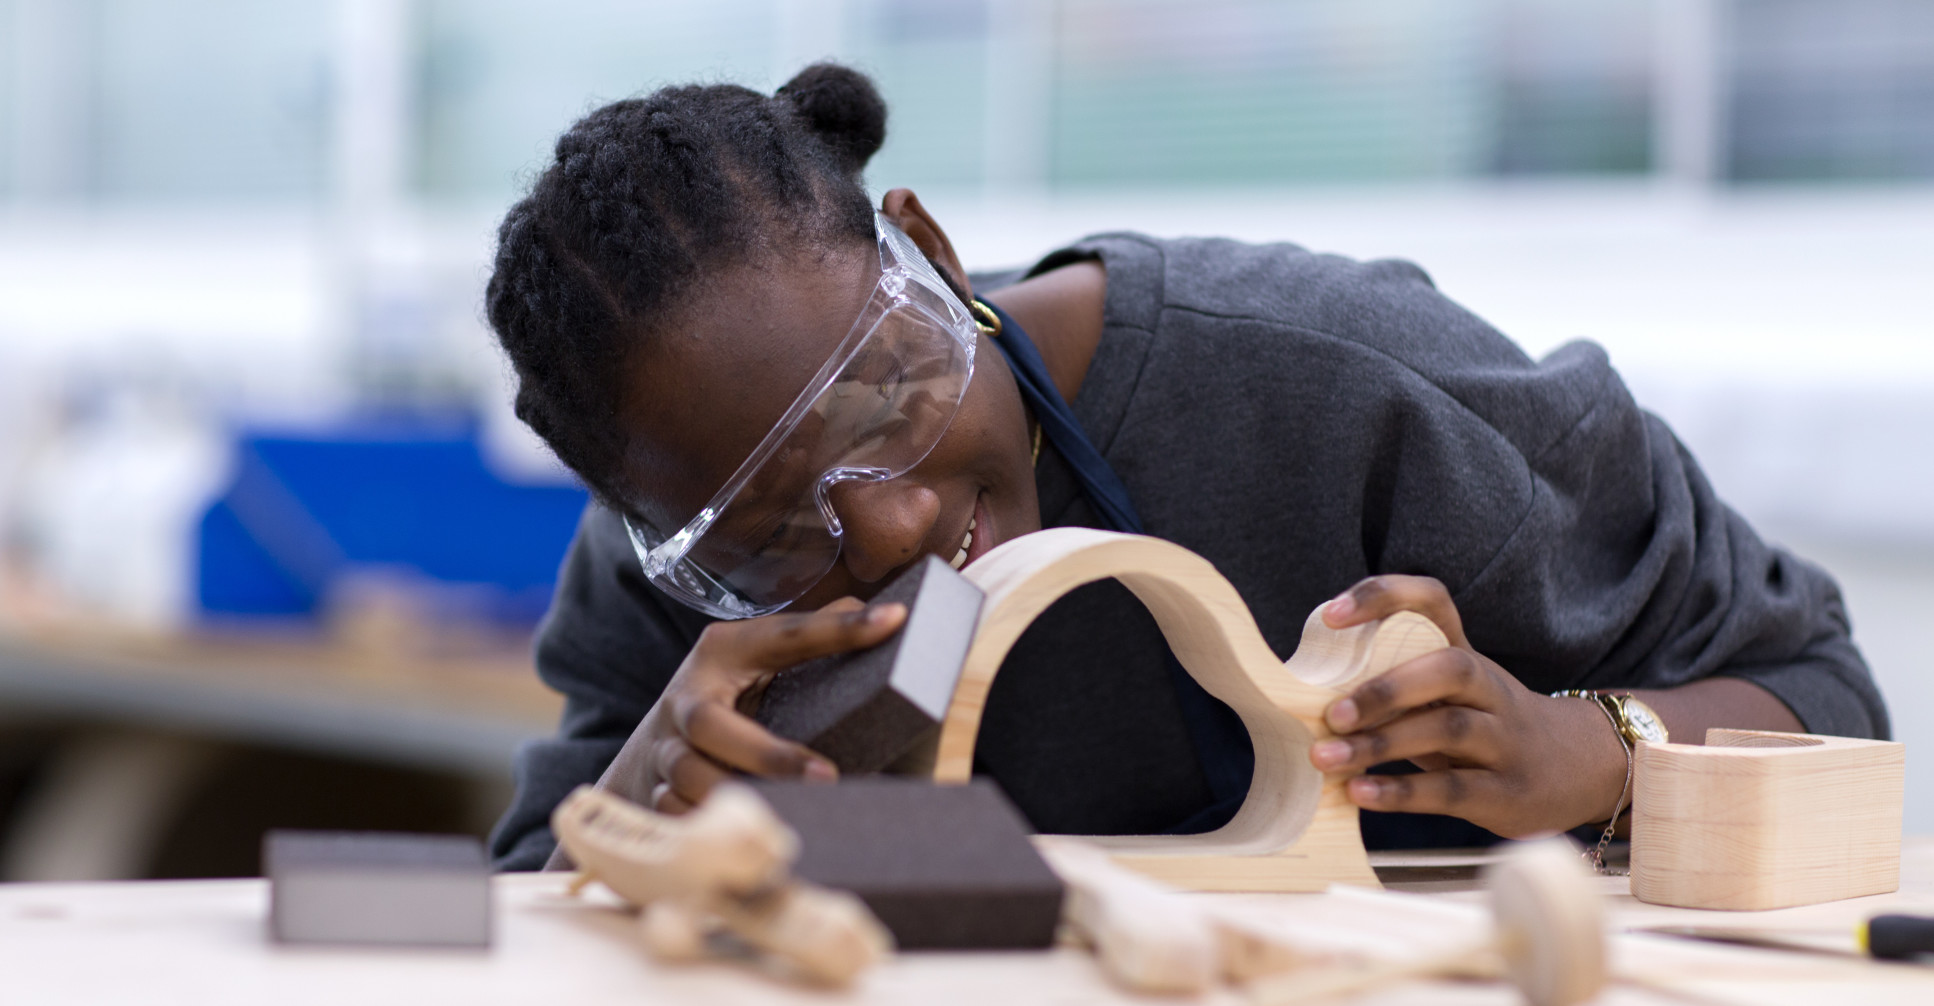 A young black woman sanding a wooden object.